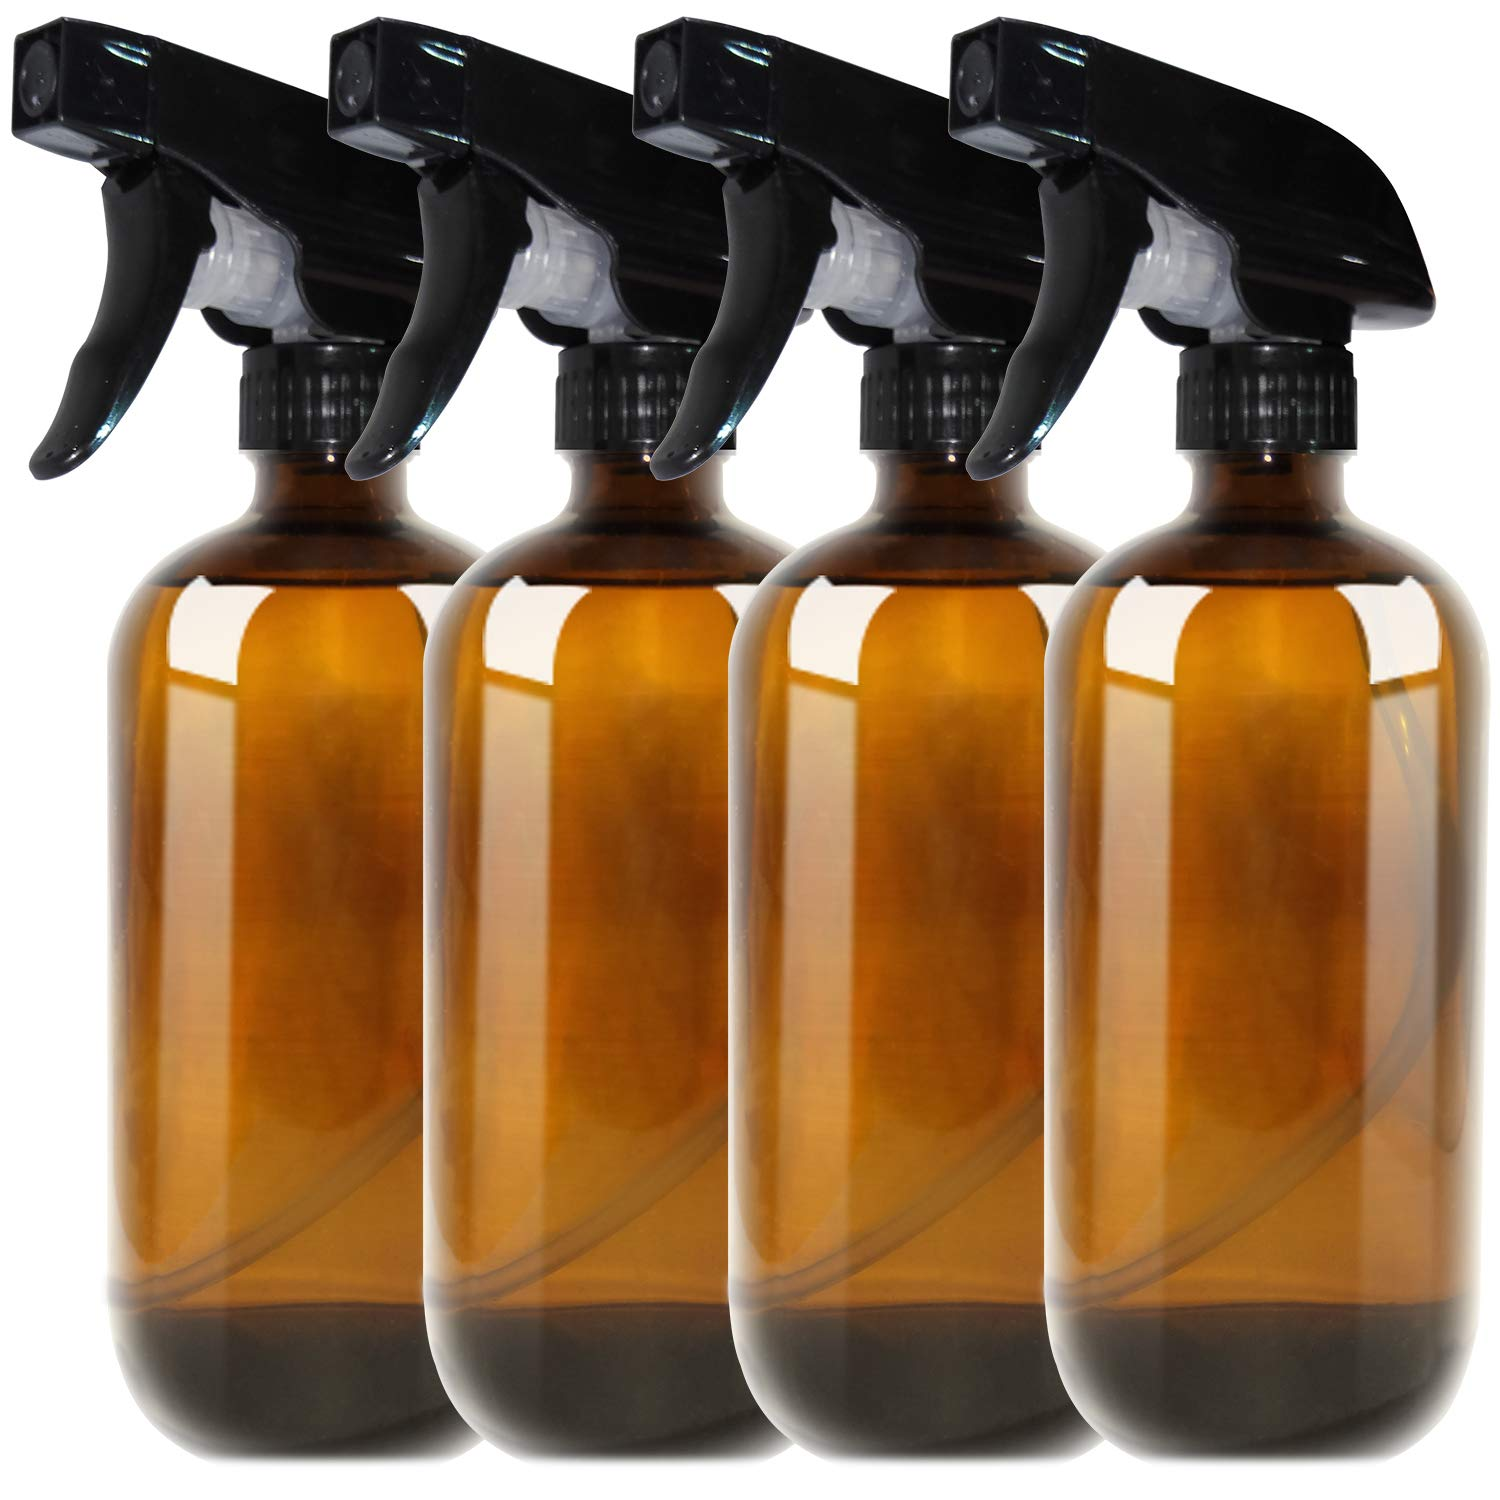 455ml (16oz) Amber Boston Spray Bottles 4 Pack - Refillable Container with Trigger Sprayers, Caps and lables, Glass Bottle for Essential Oils, Cleaning, Room Spritzers or Aromatherapy THETIS Homes